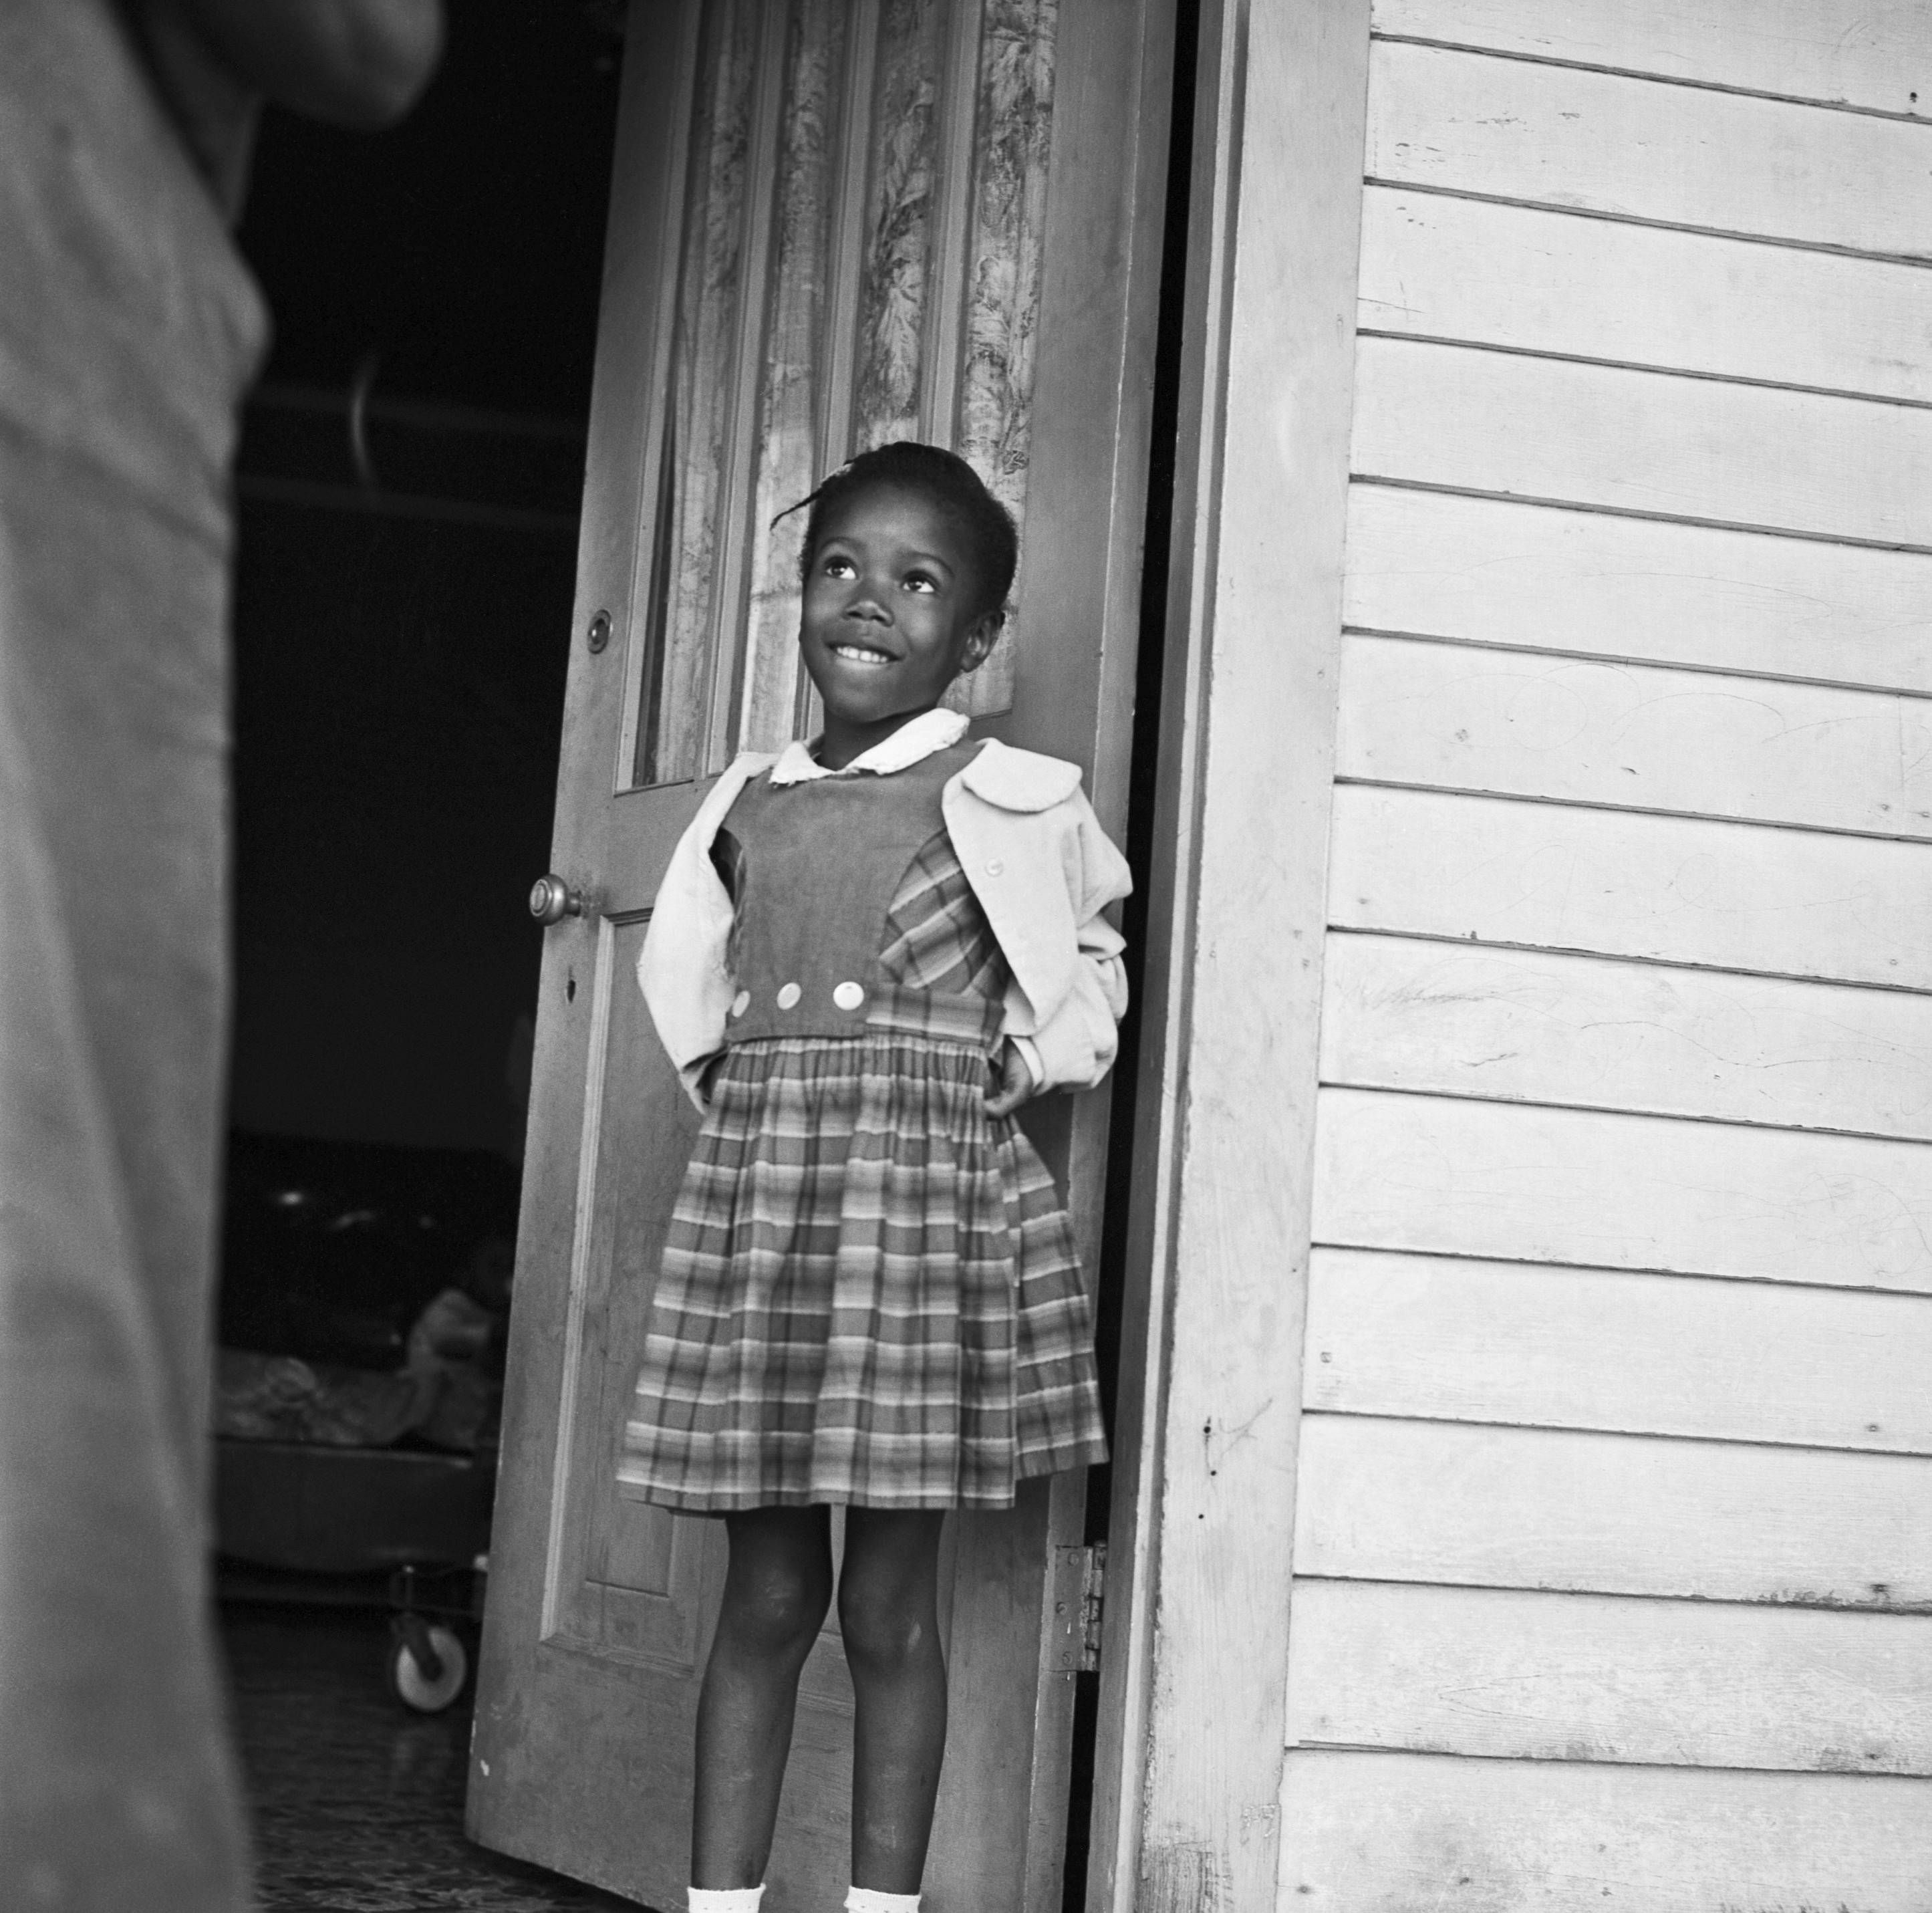 Ruby Bridges The First Black Child To Attend An All White